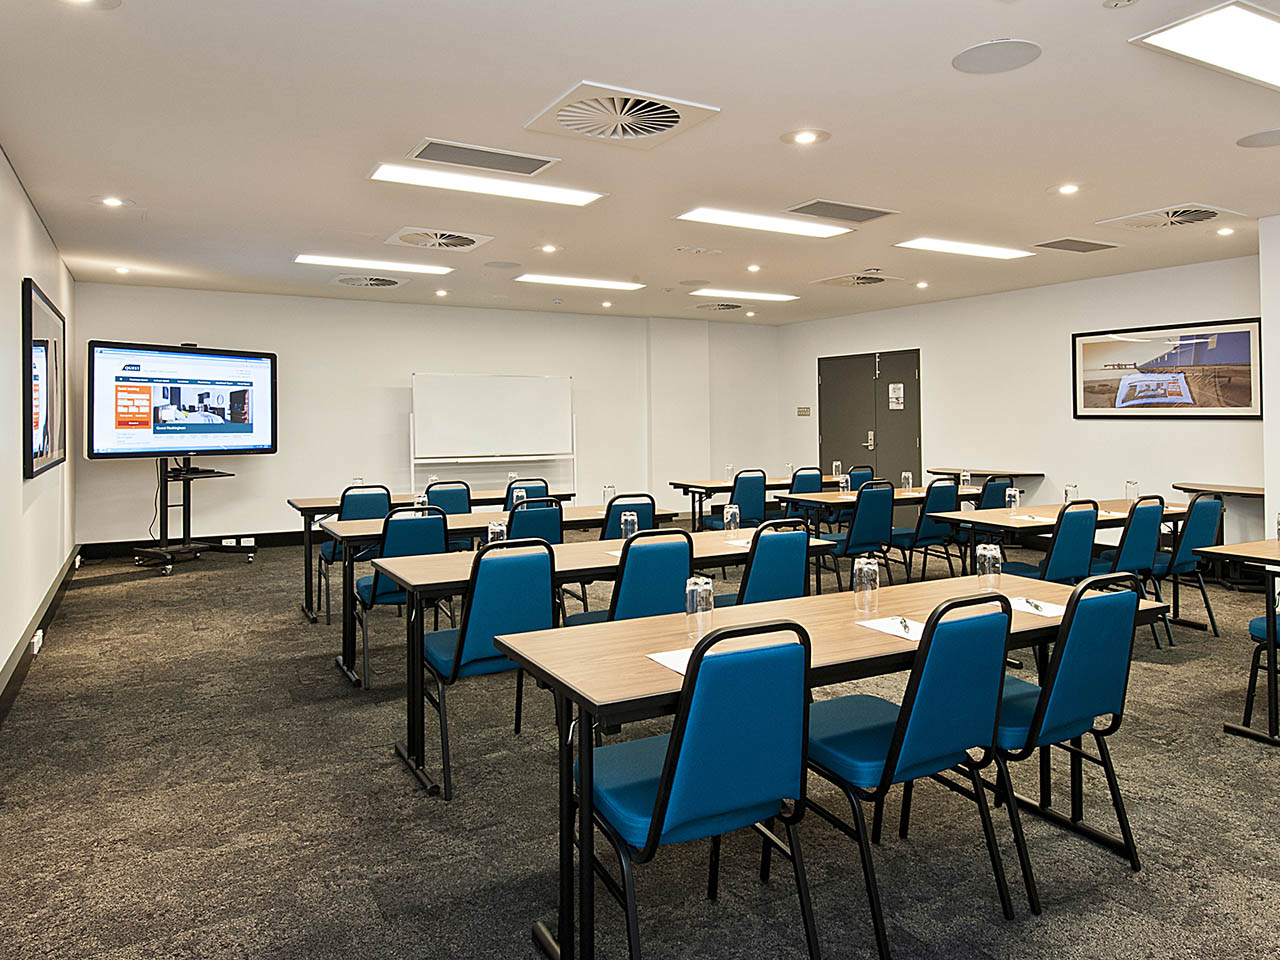 An Empty Conference Room With Desks And Chairs Set Up For A Conference.